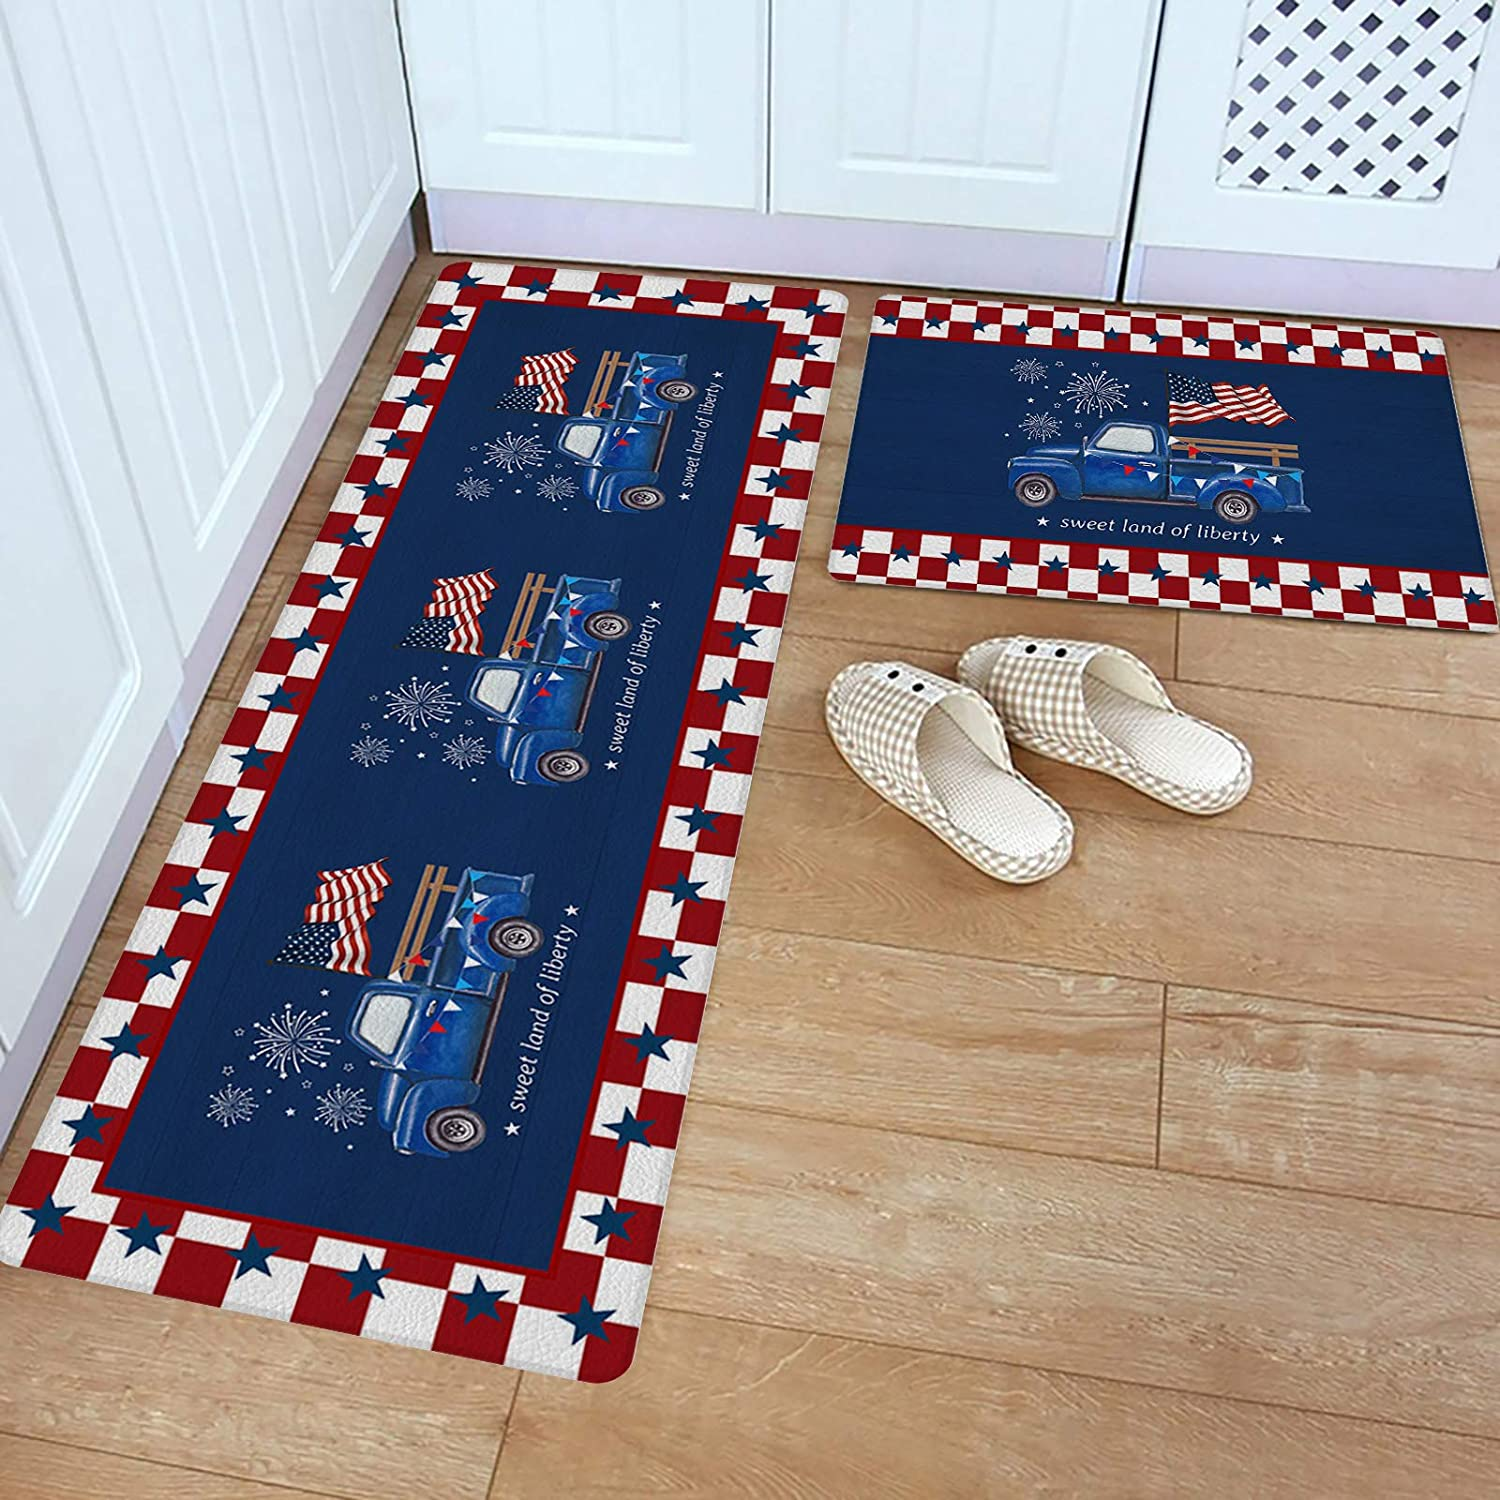 Kitchen Rug Set 2 Piece PVC B Mat Mail order Independence Leather Floor favorite Day